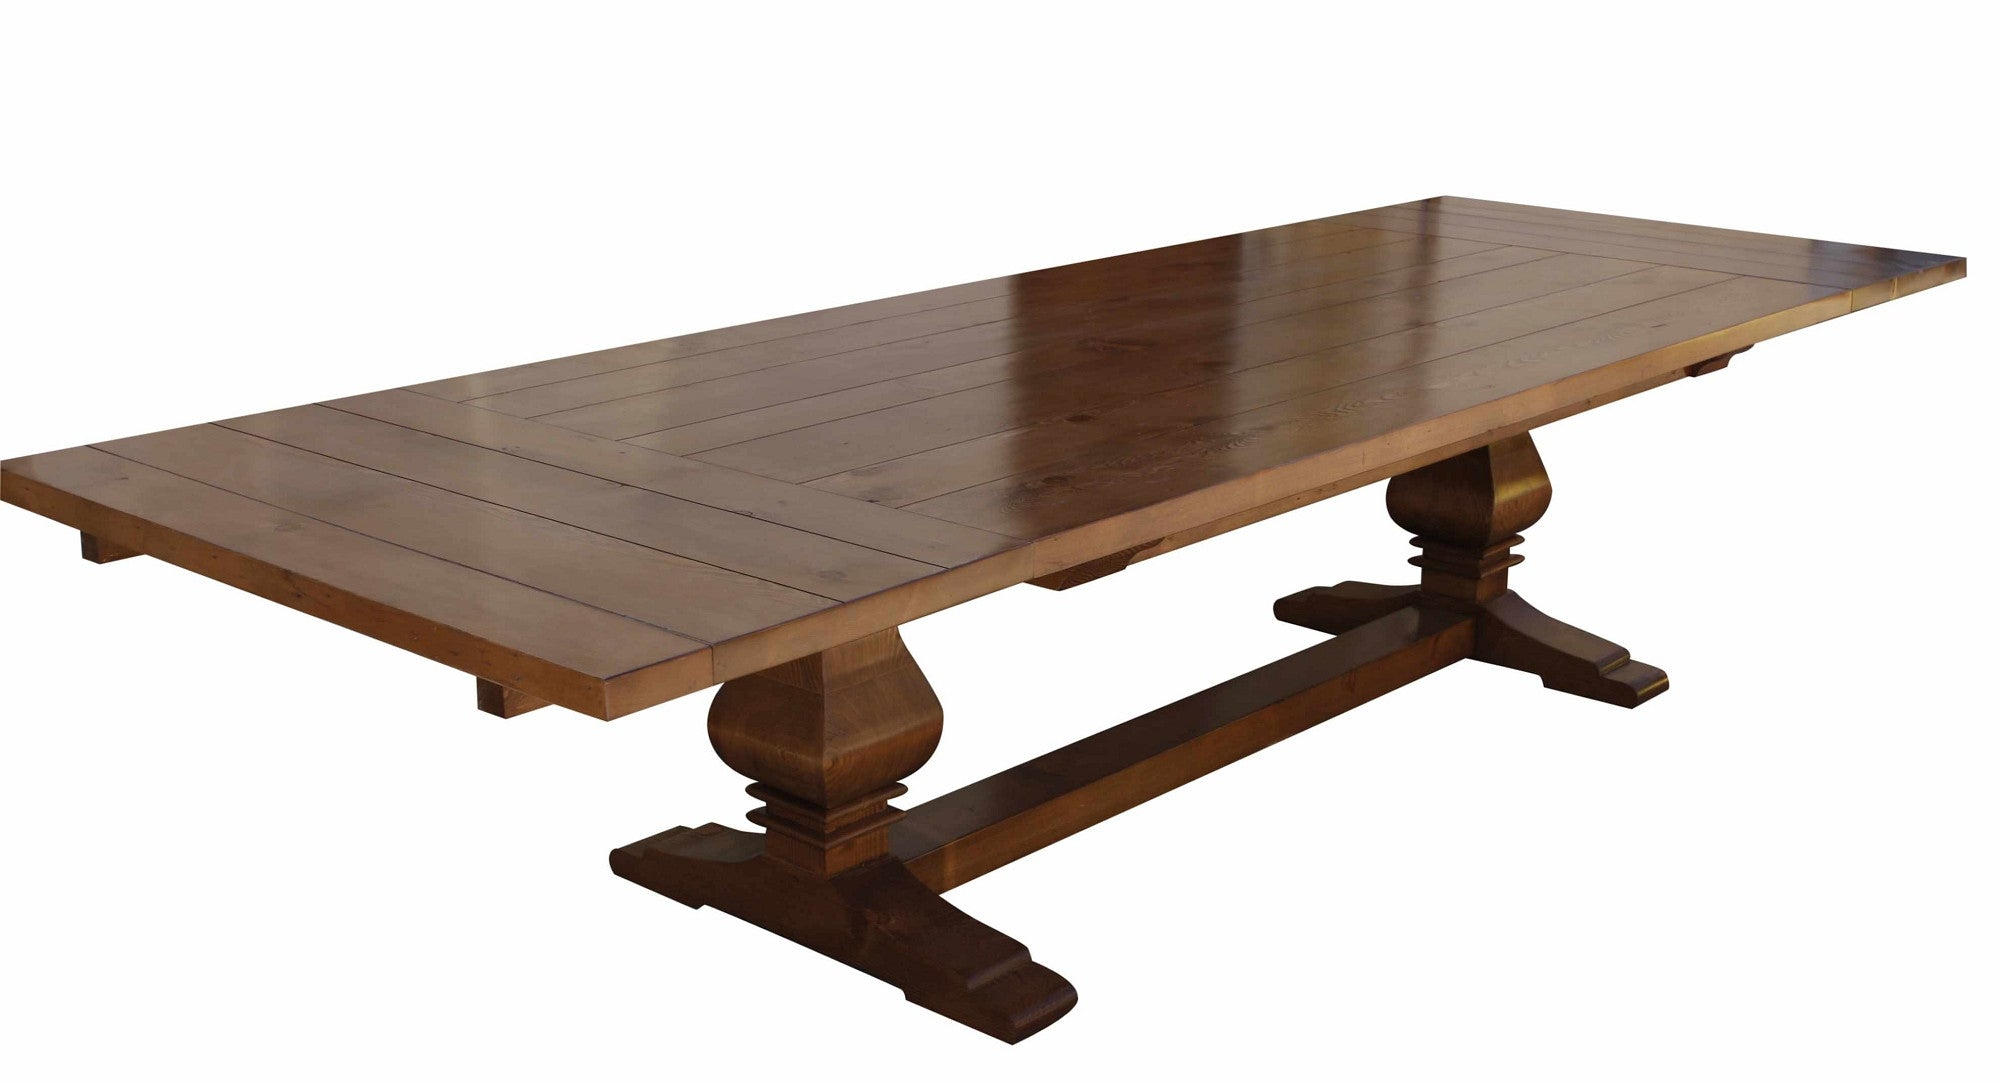 Anaheim Reclaimed Wood Extension Trestle Dining Table – Mortise & Tenon